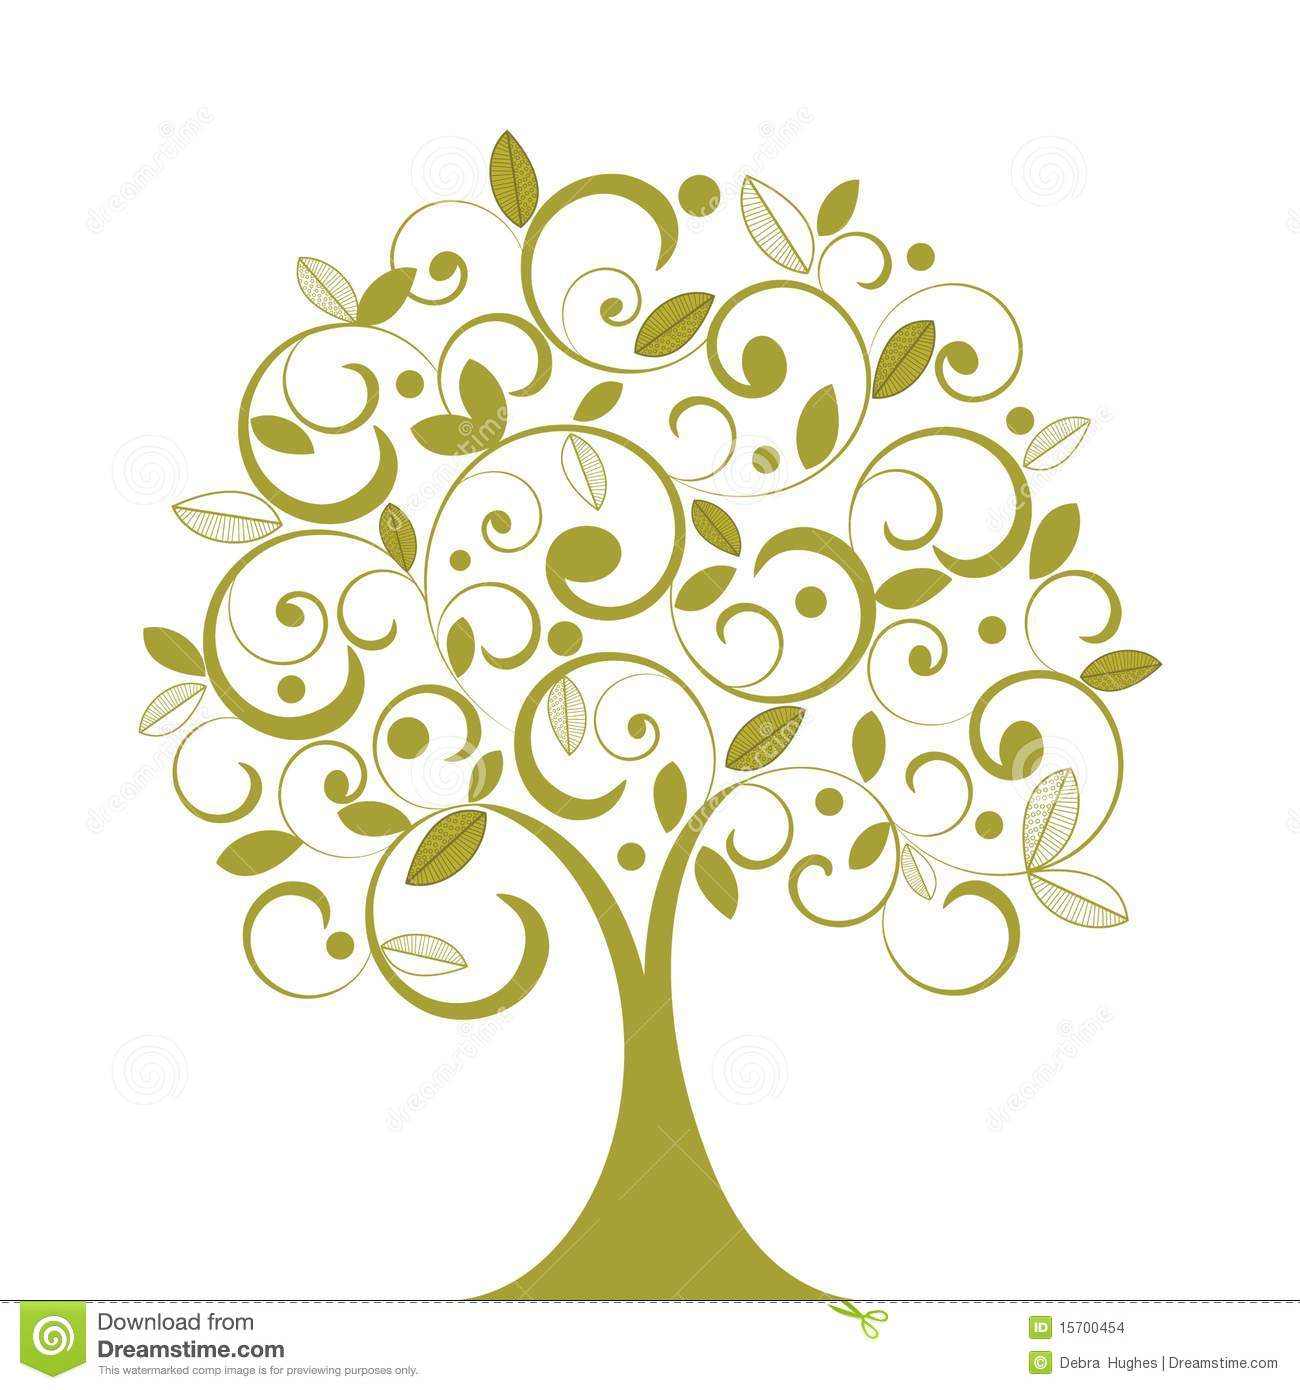 Illustration clipart whimsical tree 510 collection tree Whimsical a